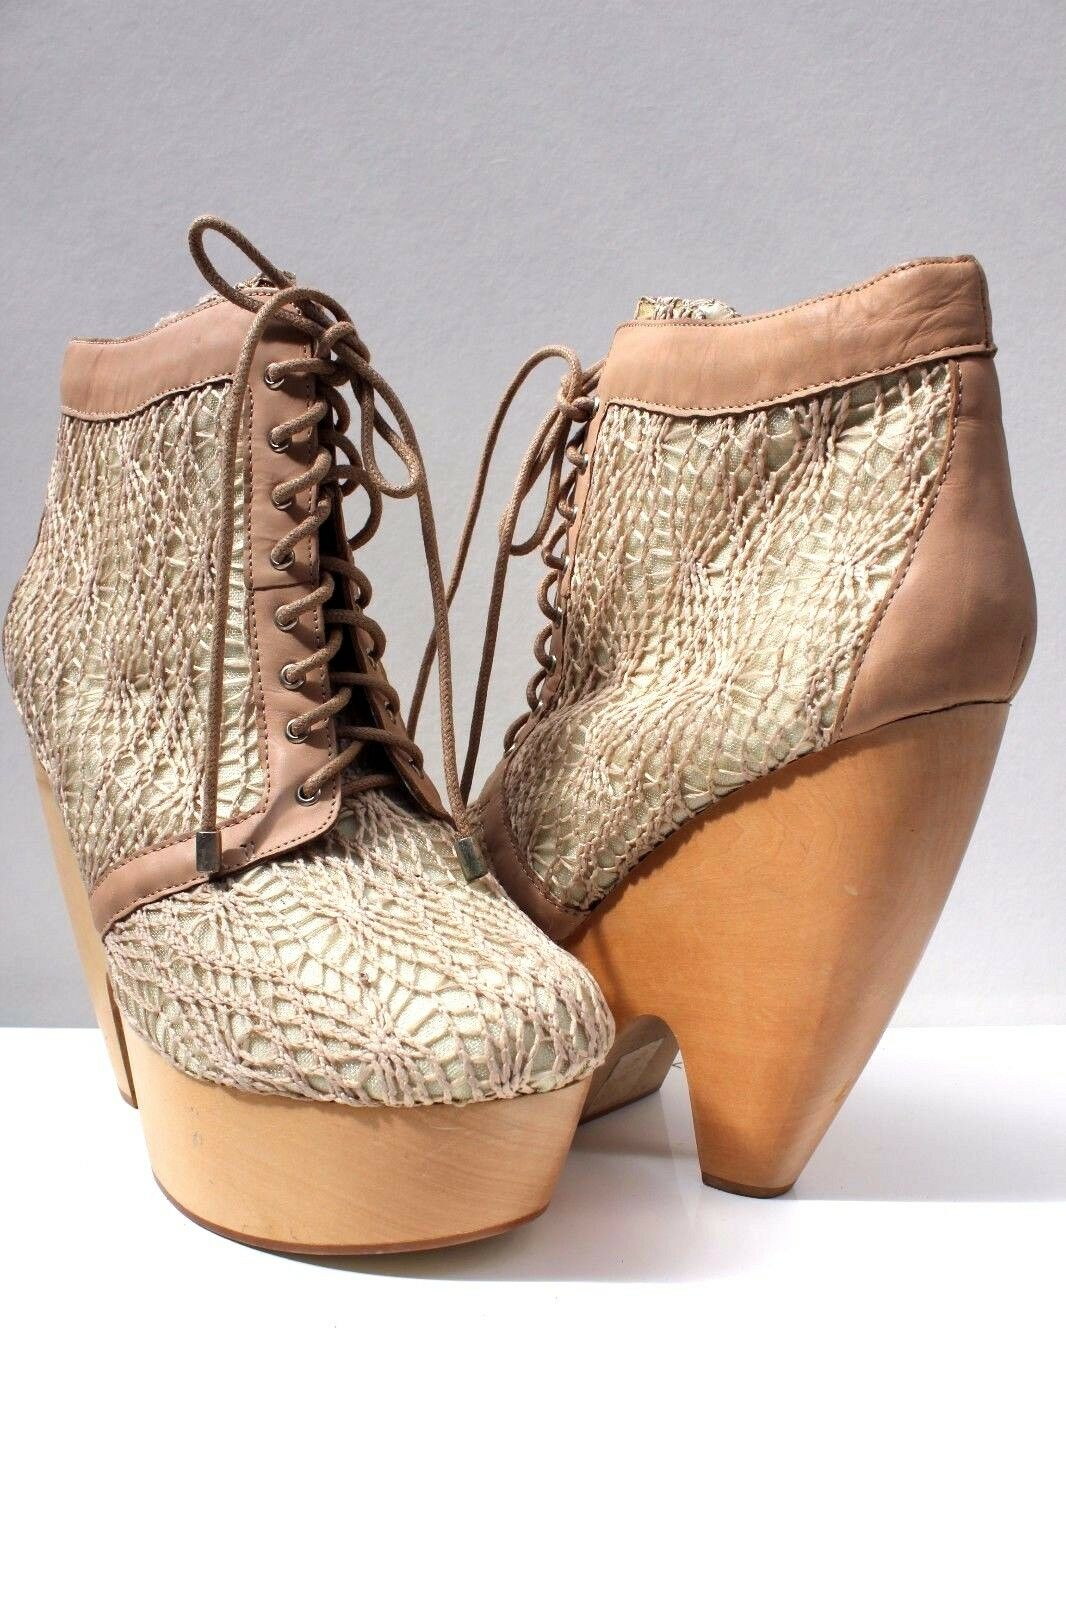 Messeca Lace Up Beige Lace Platform High Block Heel US Ankle Stiefel 7 40 US Heel 9.5 New fd2689